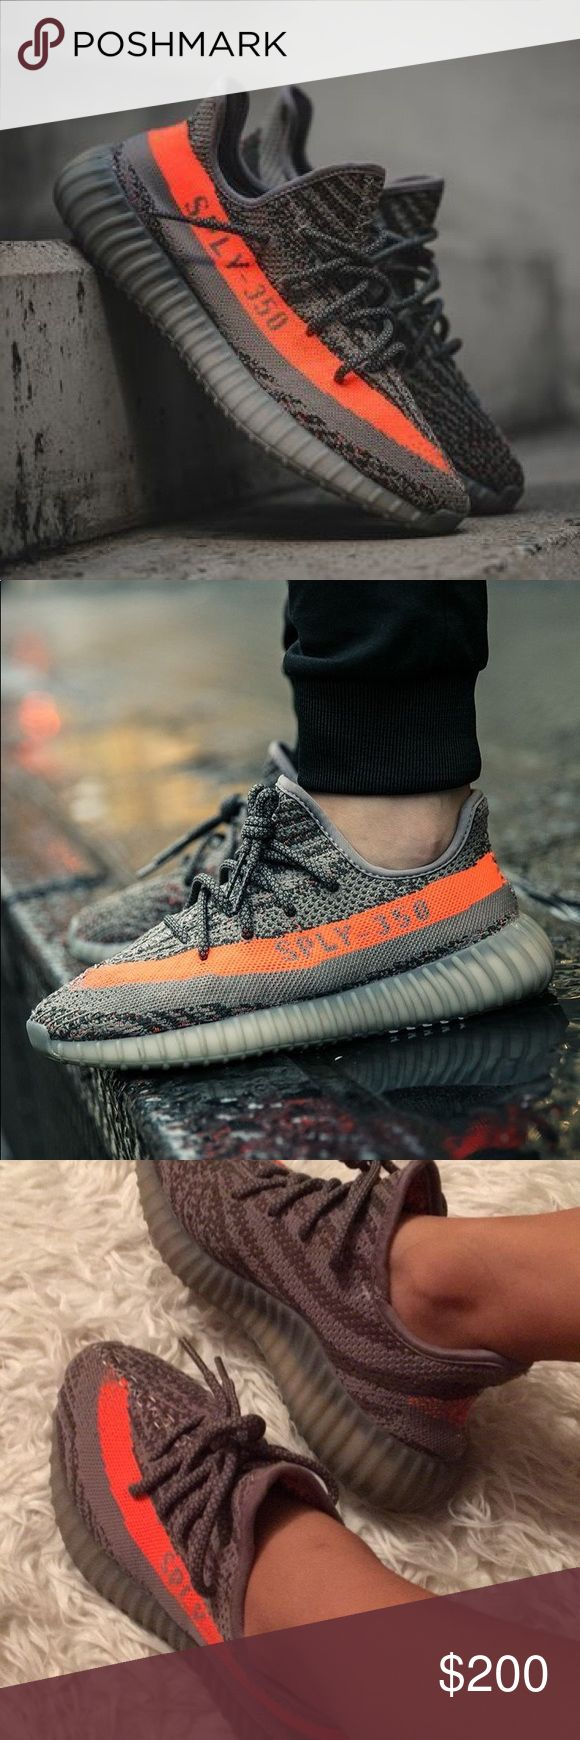 SALE!! Yeezy Boost 350! Email me for your inquiries and size! The price is negotiable and i will provide free shipping on pal 🎉🎉 leasotobusiness gmail adidas Shoes Athletic Shoes